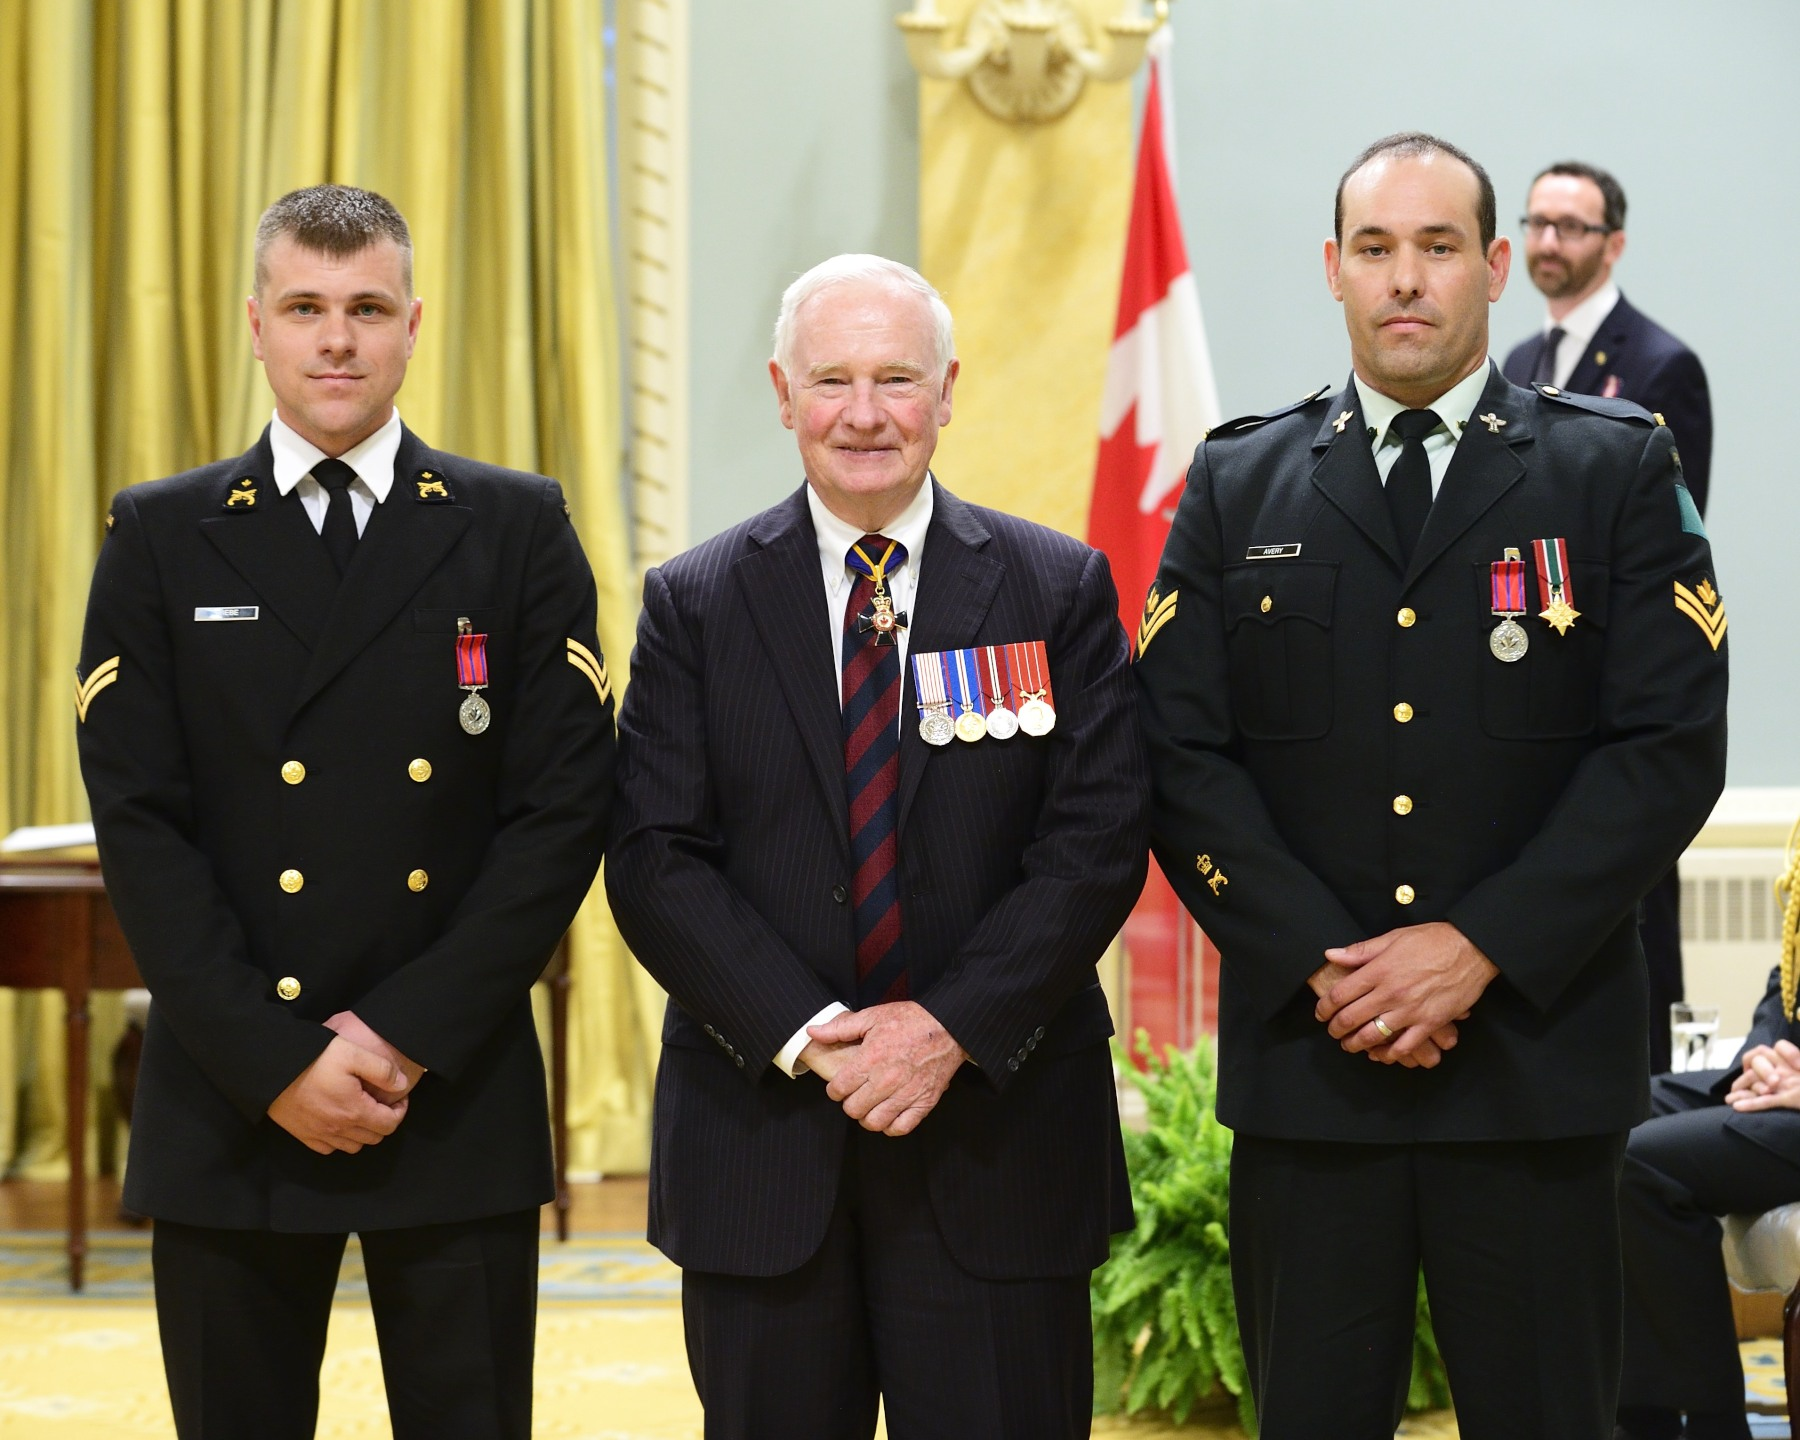 On February 6, 2013, Corporal Garet James Avery, M.B. (Sudbury and Kanata, Ontario) and Ordinary Seaman Benne Wiebe, M.B. (Aylmer, Quebec and Kingston, Ontario) put their lives at risk to prevent a man from setting himself on fire in Kingston, Ontario. They slowly approached the distraught man and pinned him to the ground before he could set fire to his gasoline-soaked clothing, thus saving him from tragedy.